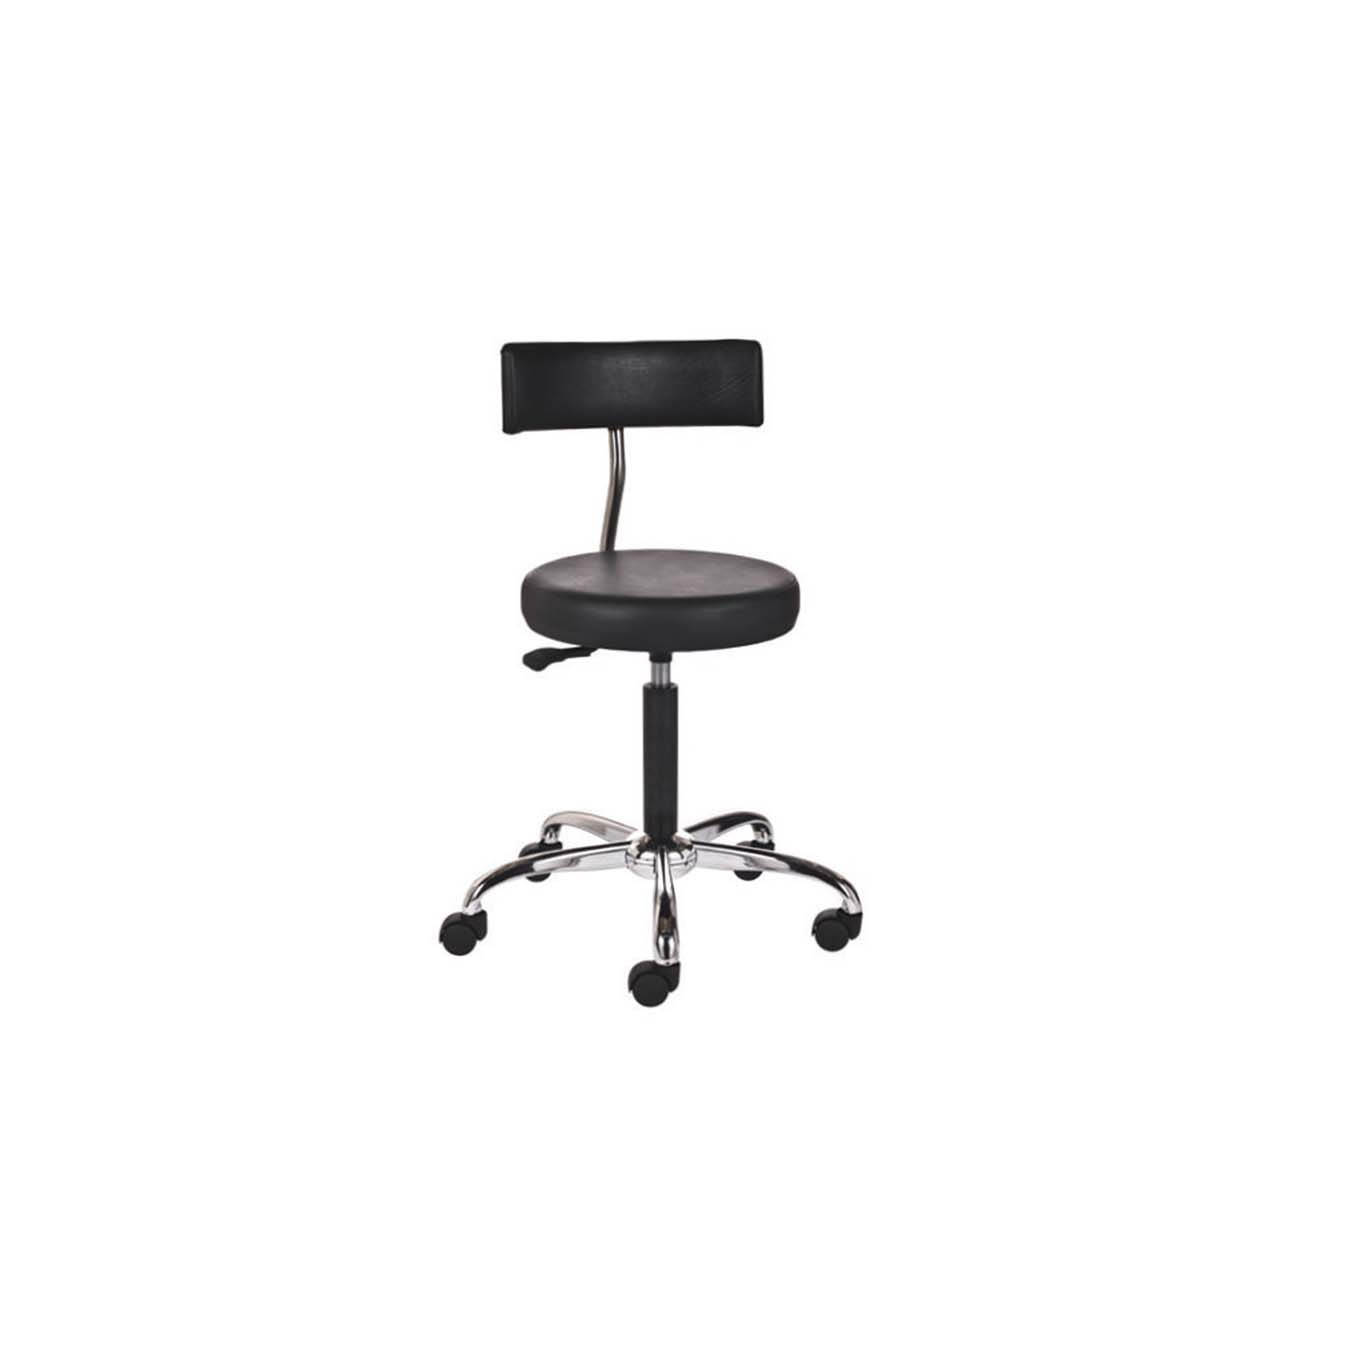 AX265_1_Surgeon-Stool-Hand-Operated-with-Backrest_1